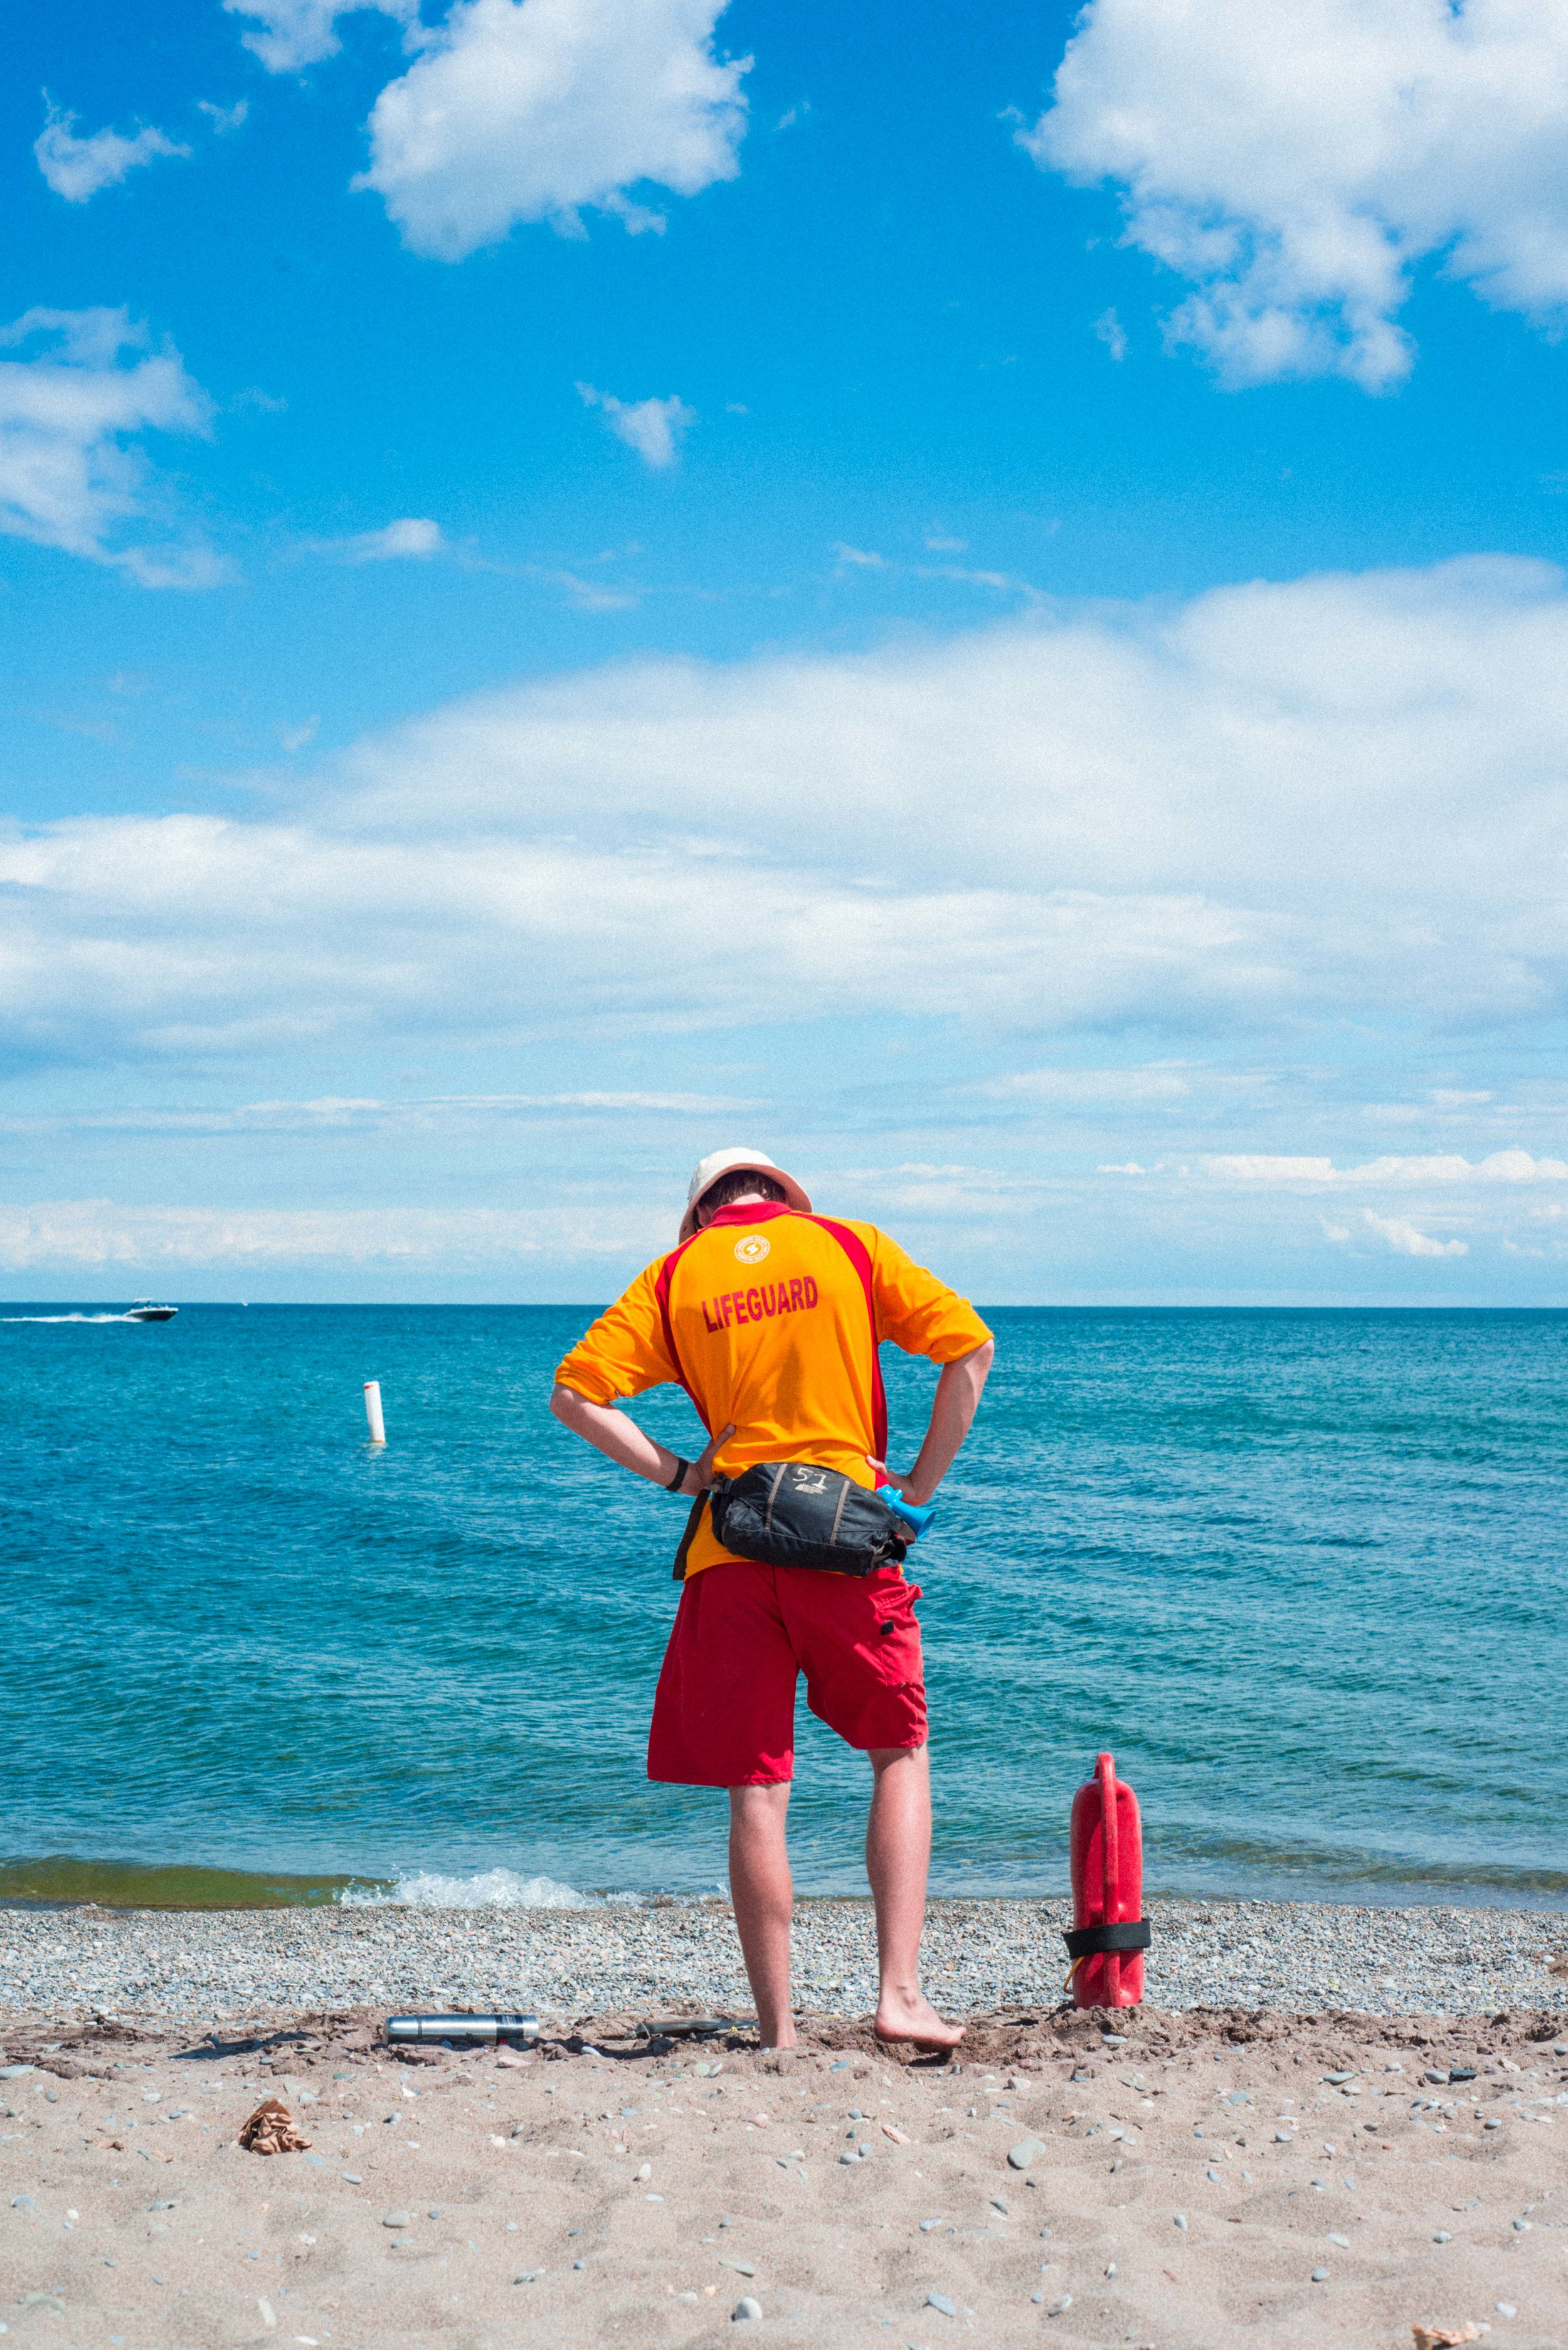 ryan thompson creative photography - insecure life guard